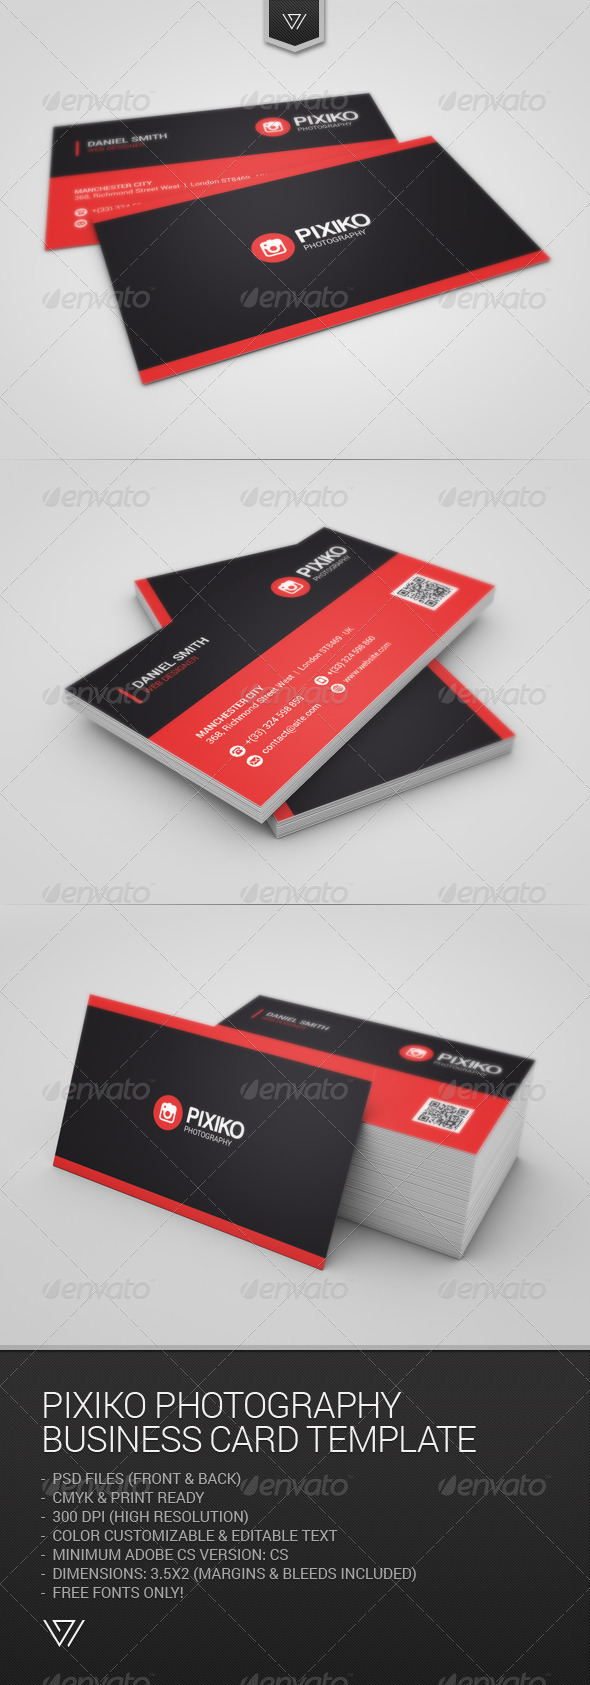 GraphicRiver Pixiko Photography Business Card 7831304